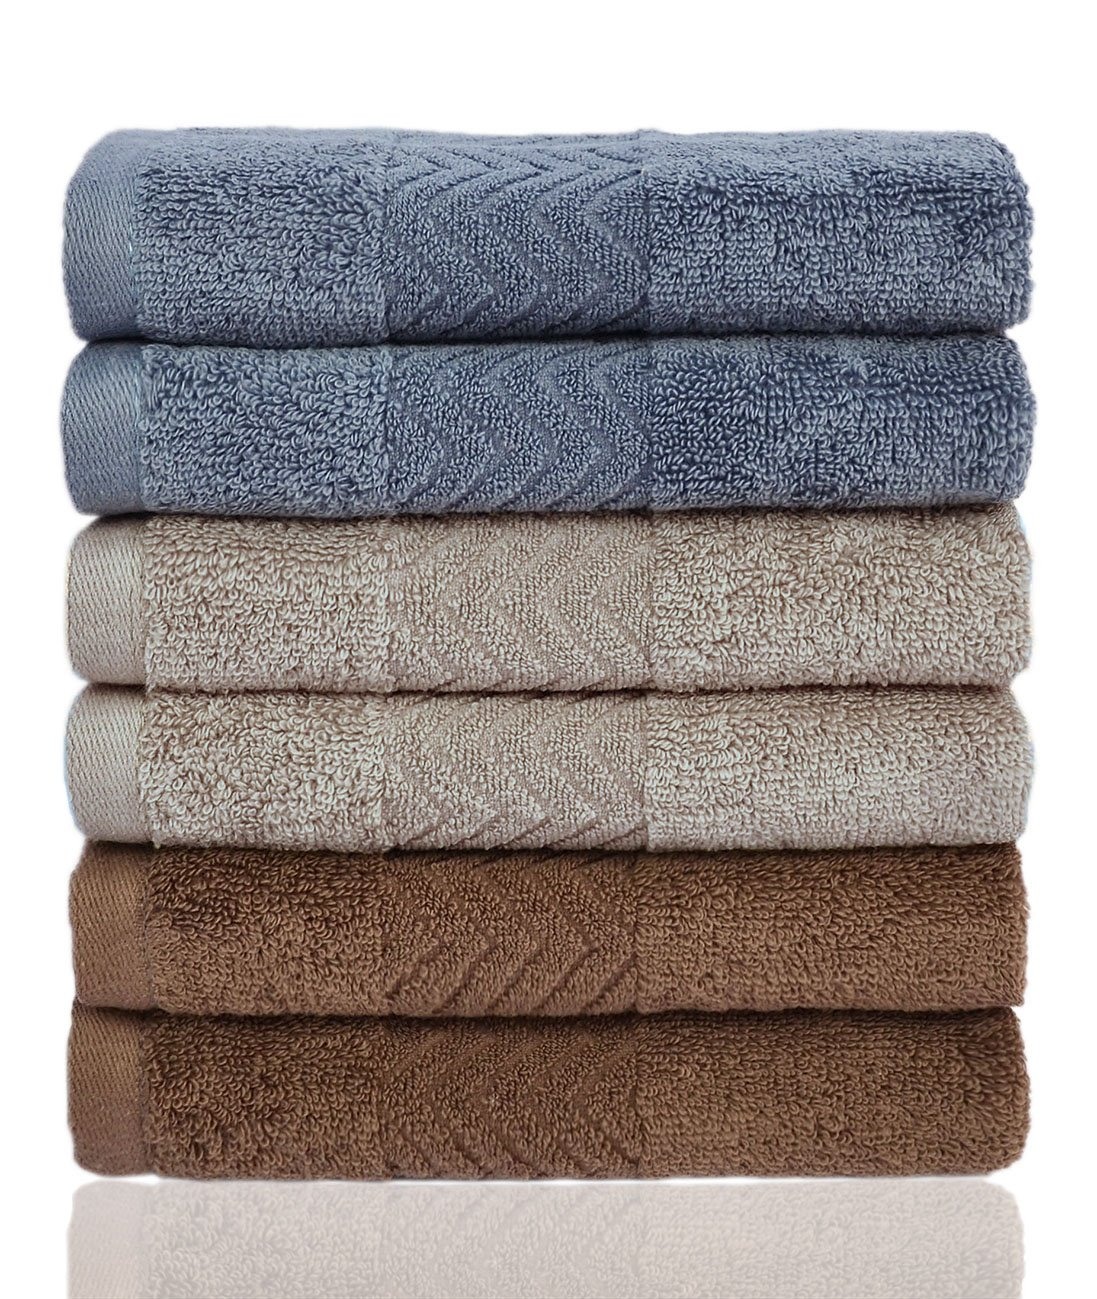 Cleanbear Cotton Washcloths (13 x 13 Inch), 6-Pack, 3 Colors - Blue Grey, Brown and Khaki